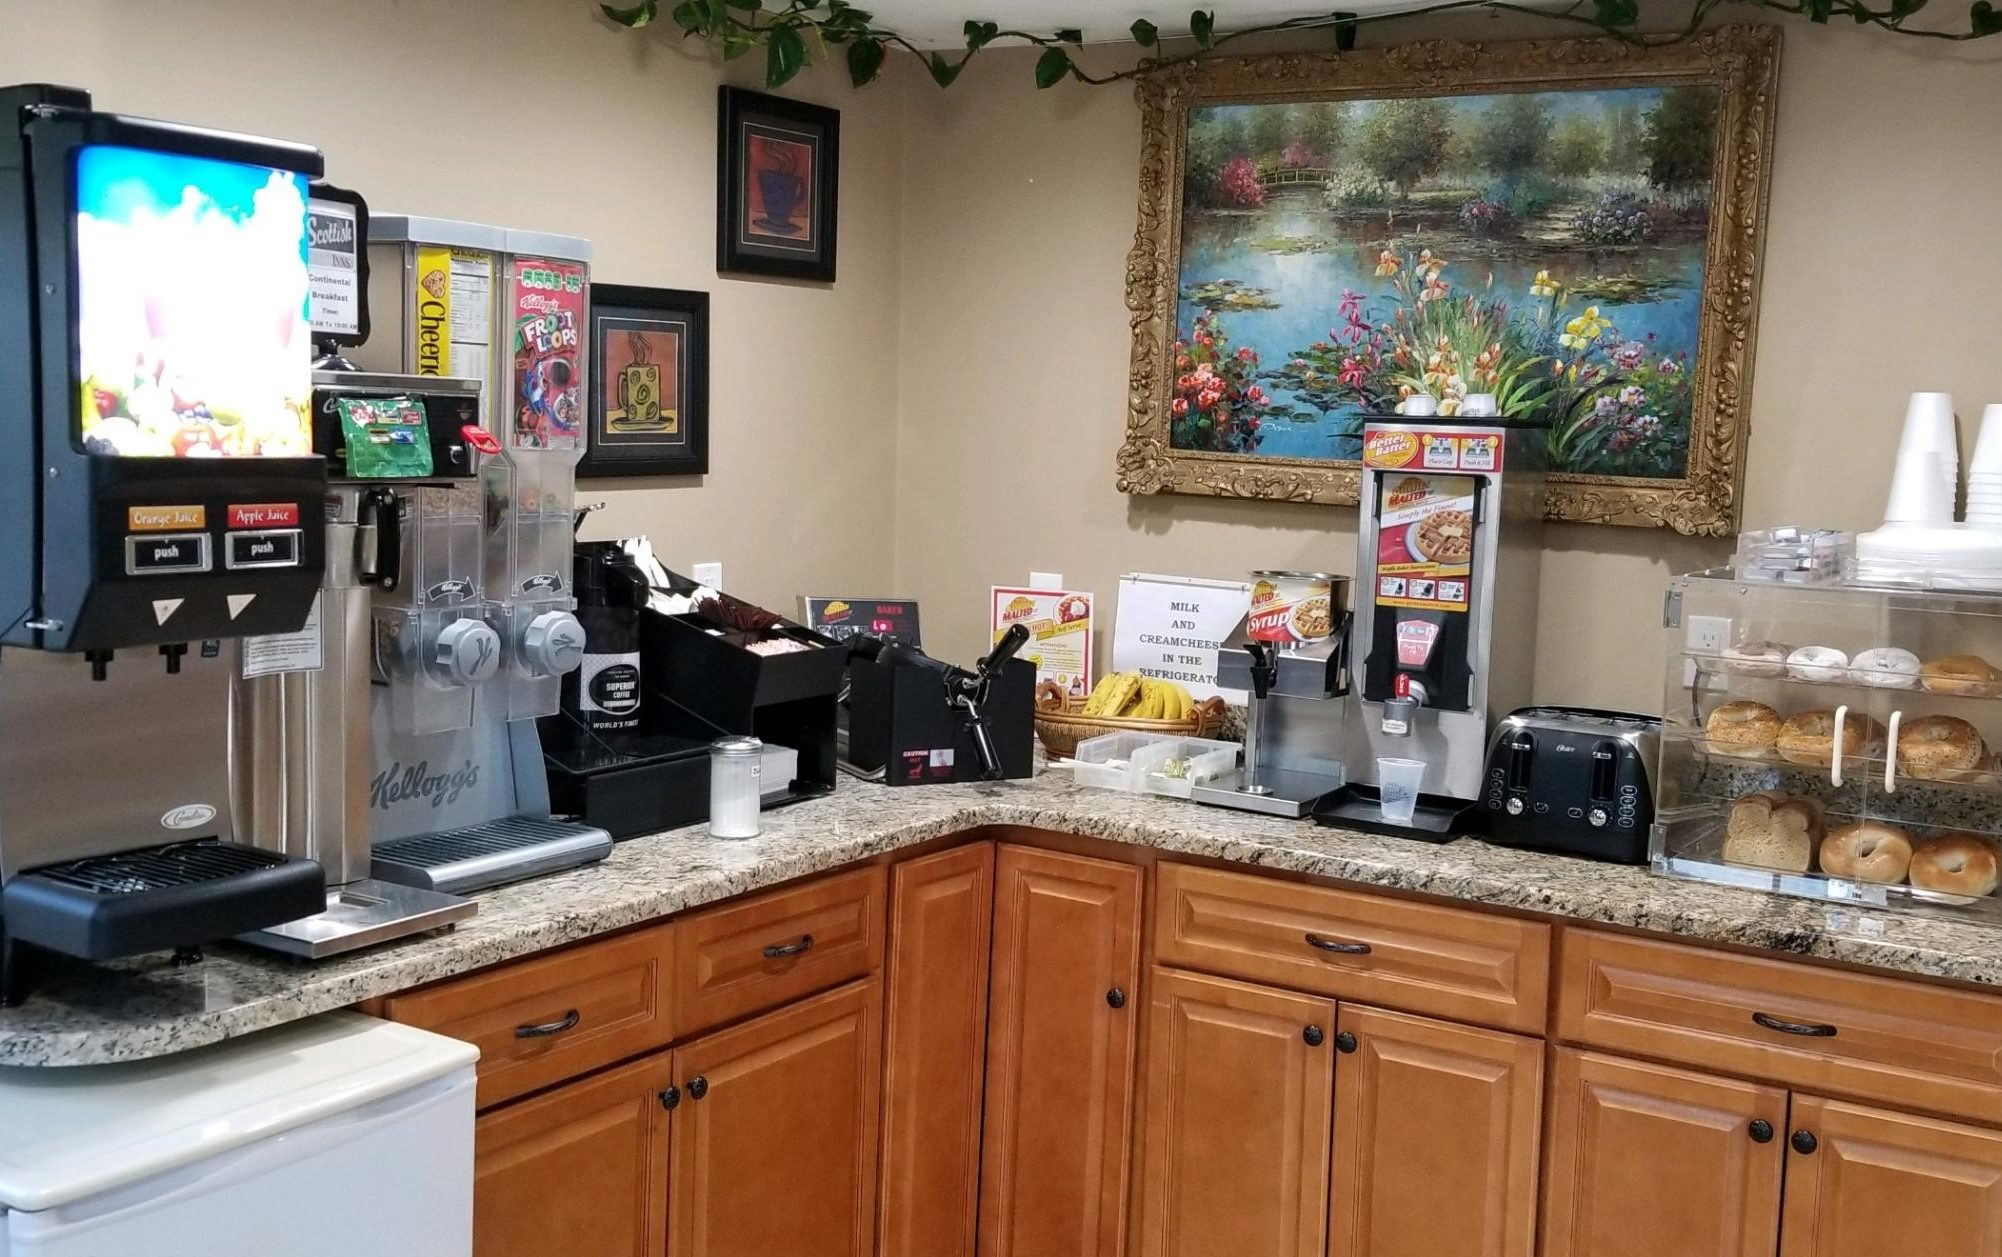 Breakfast display with juice dispenser, cereal dispensers, fruit, waffle machine, toaster, breakfast pastries display case